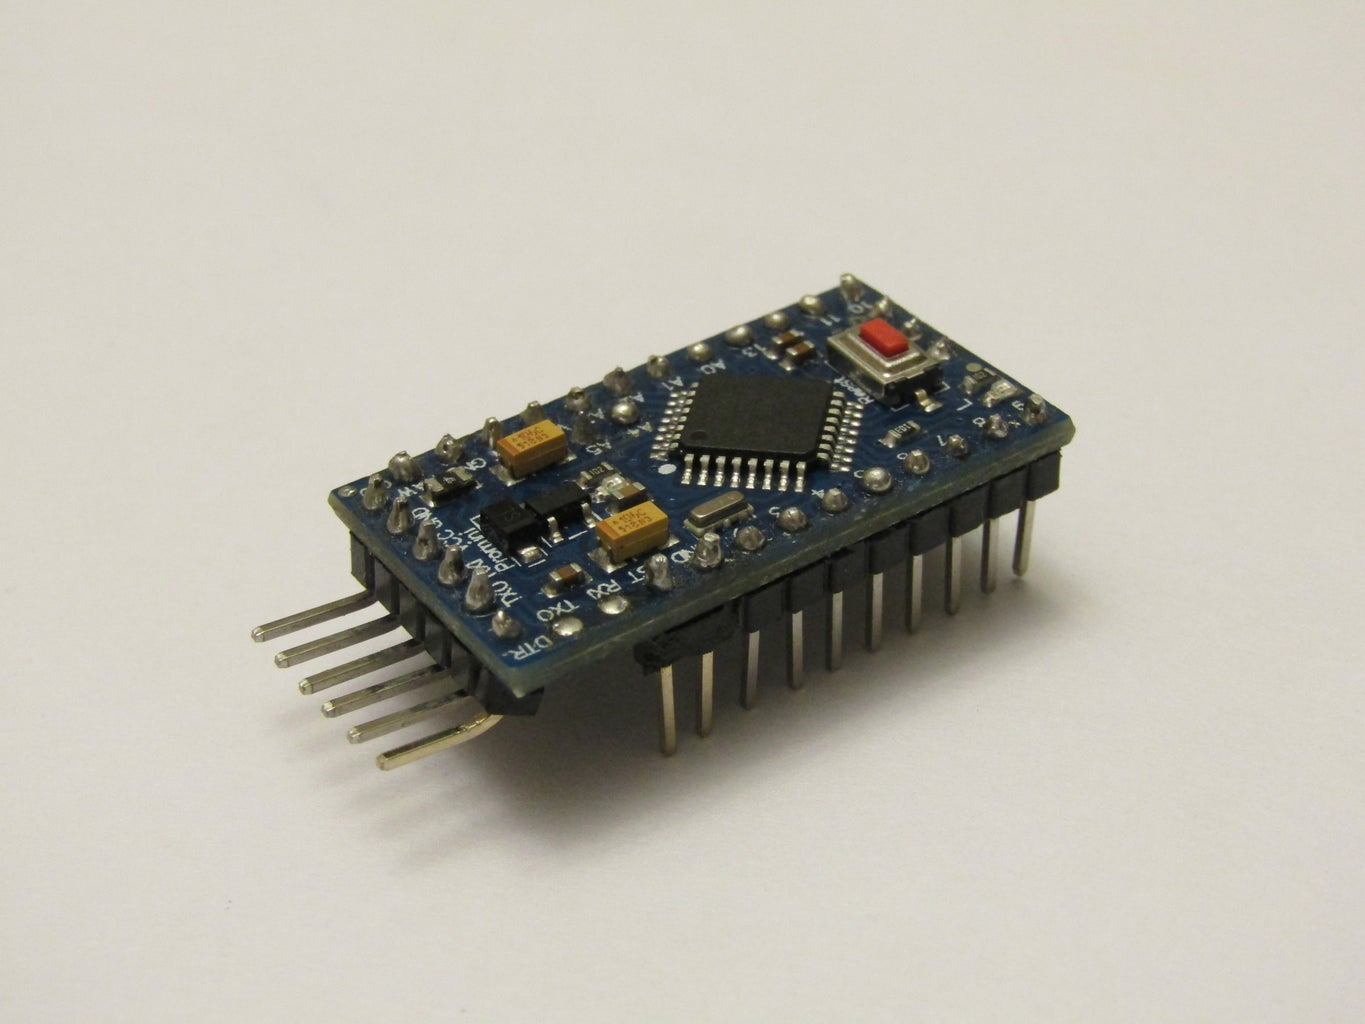 Medium Arduino Boards: Physical Specs Are Relatively Important